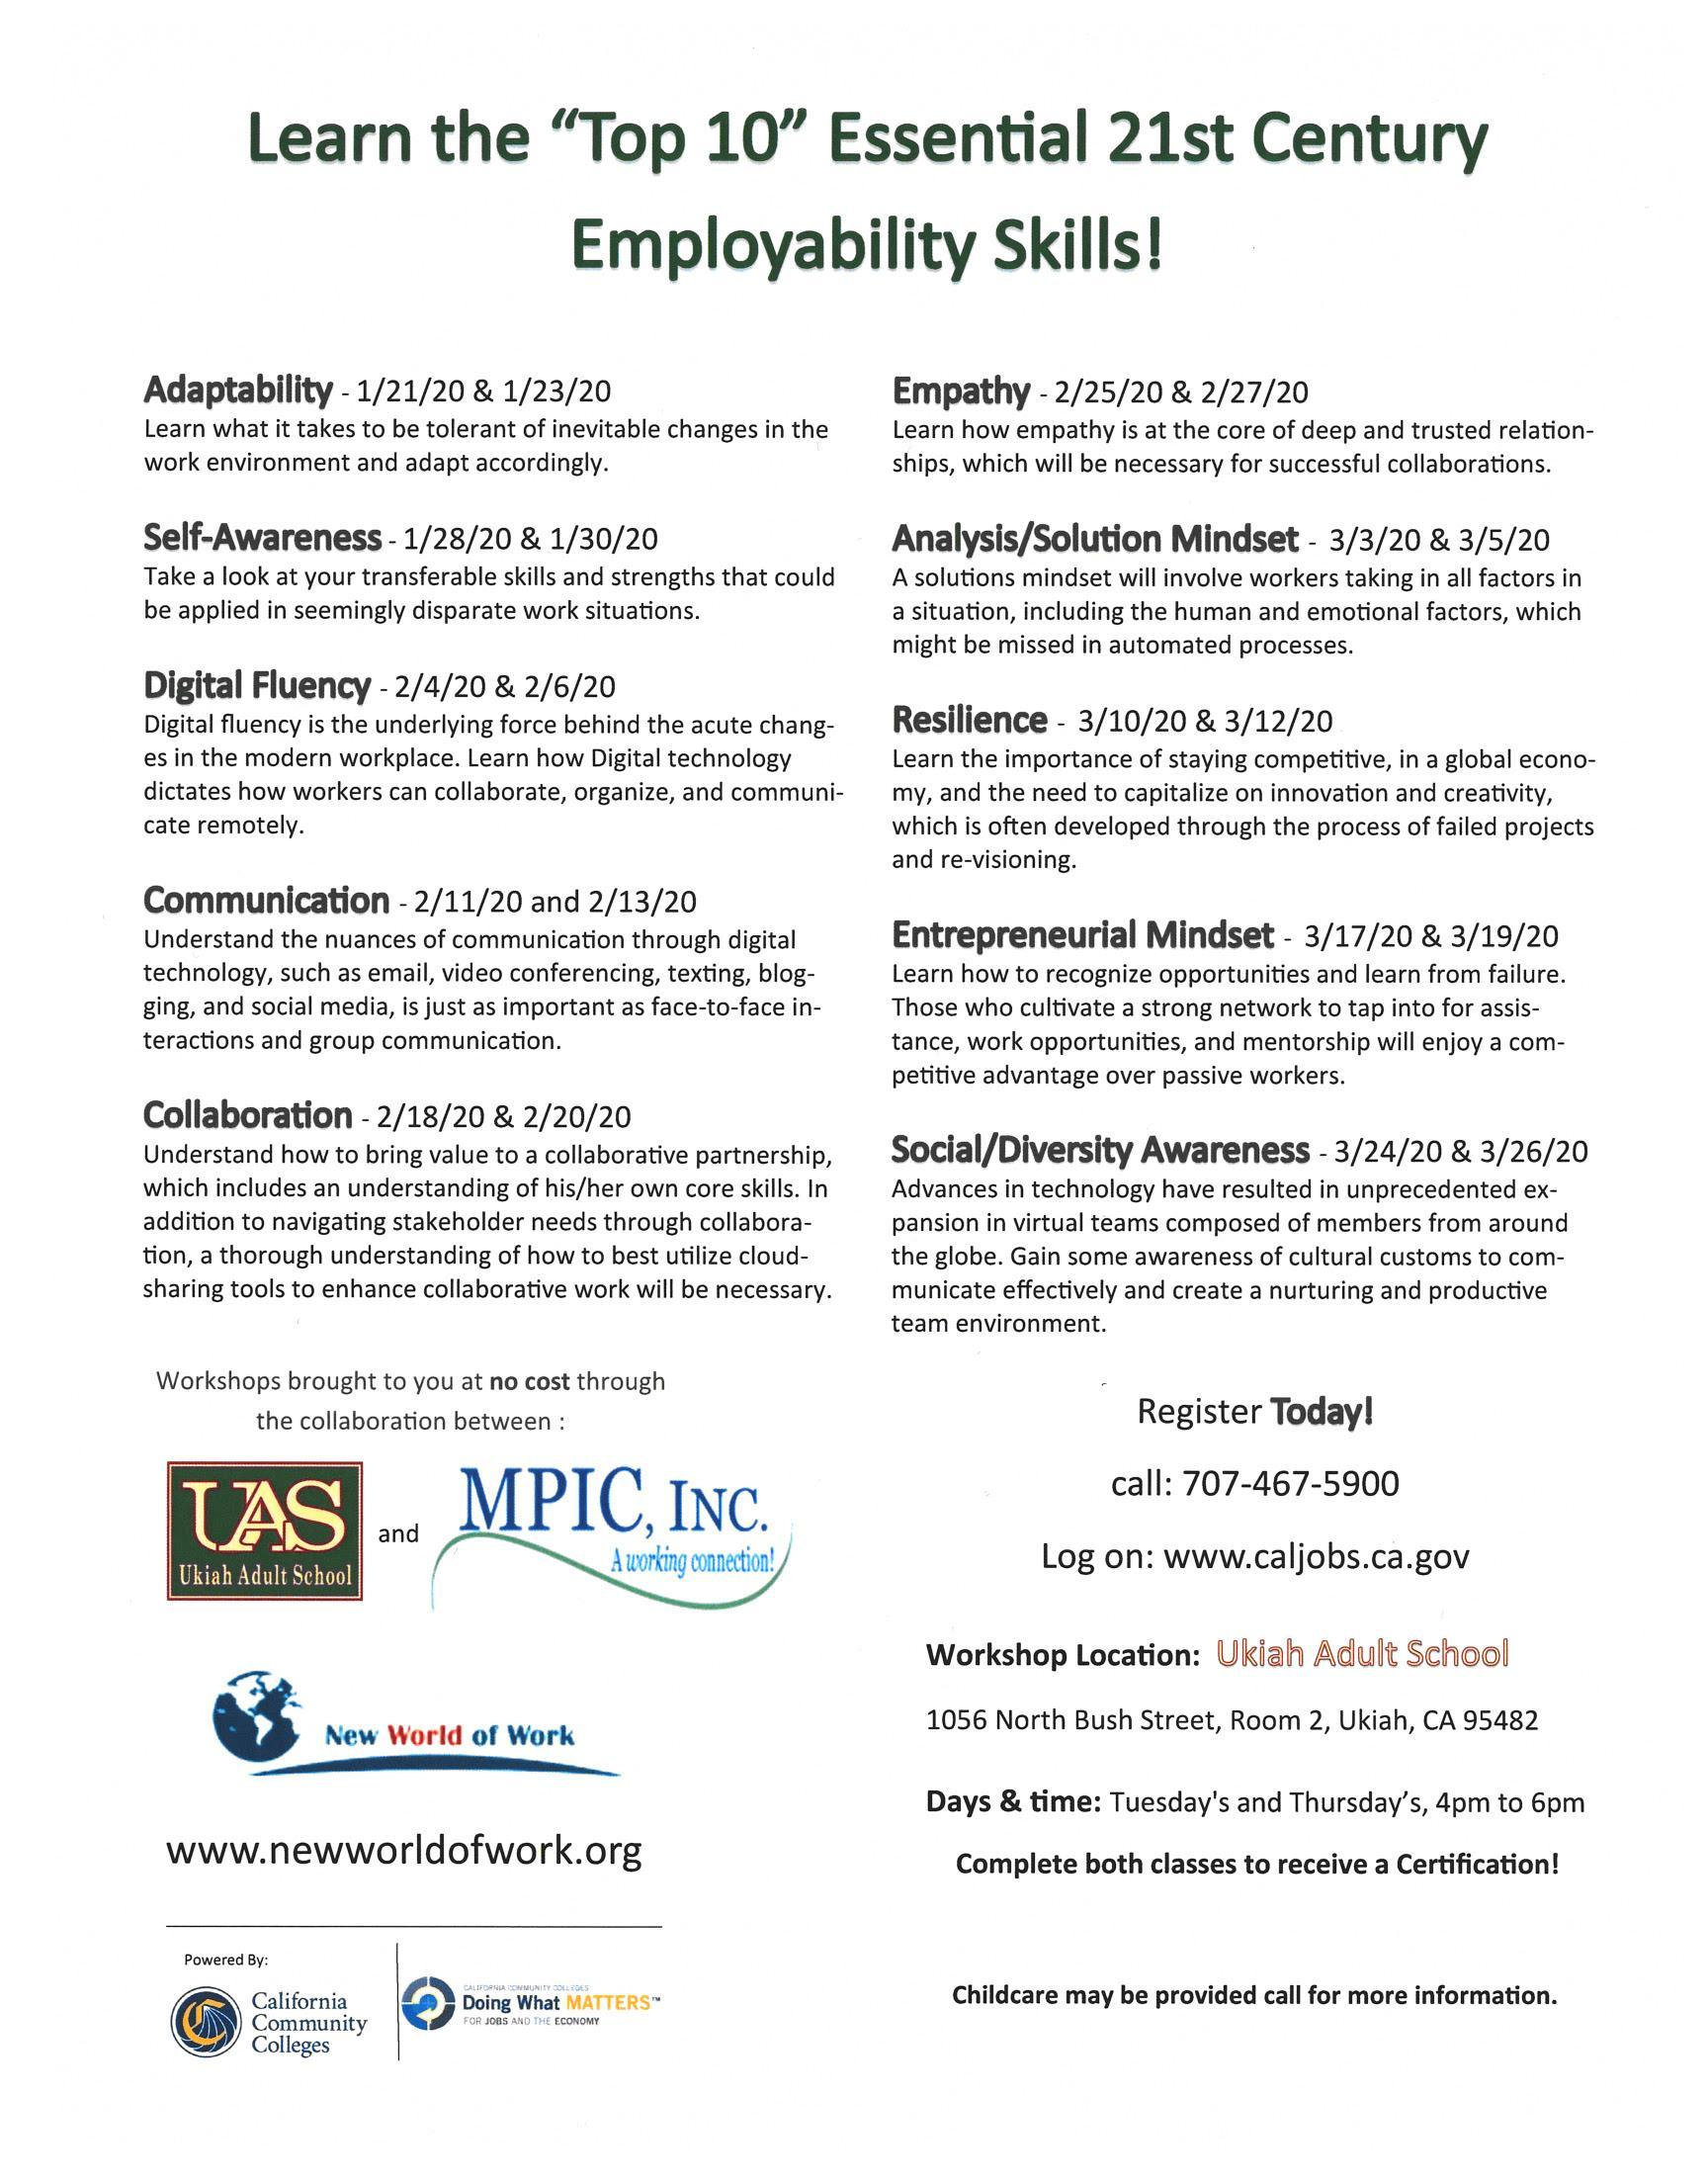 Jobs Skills Workshops poster